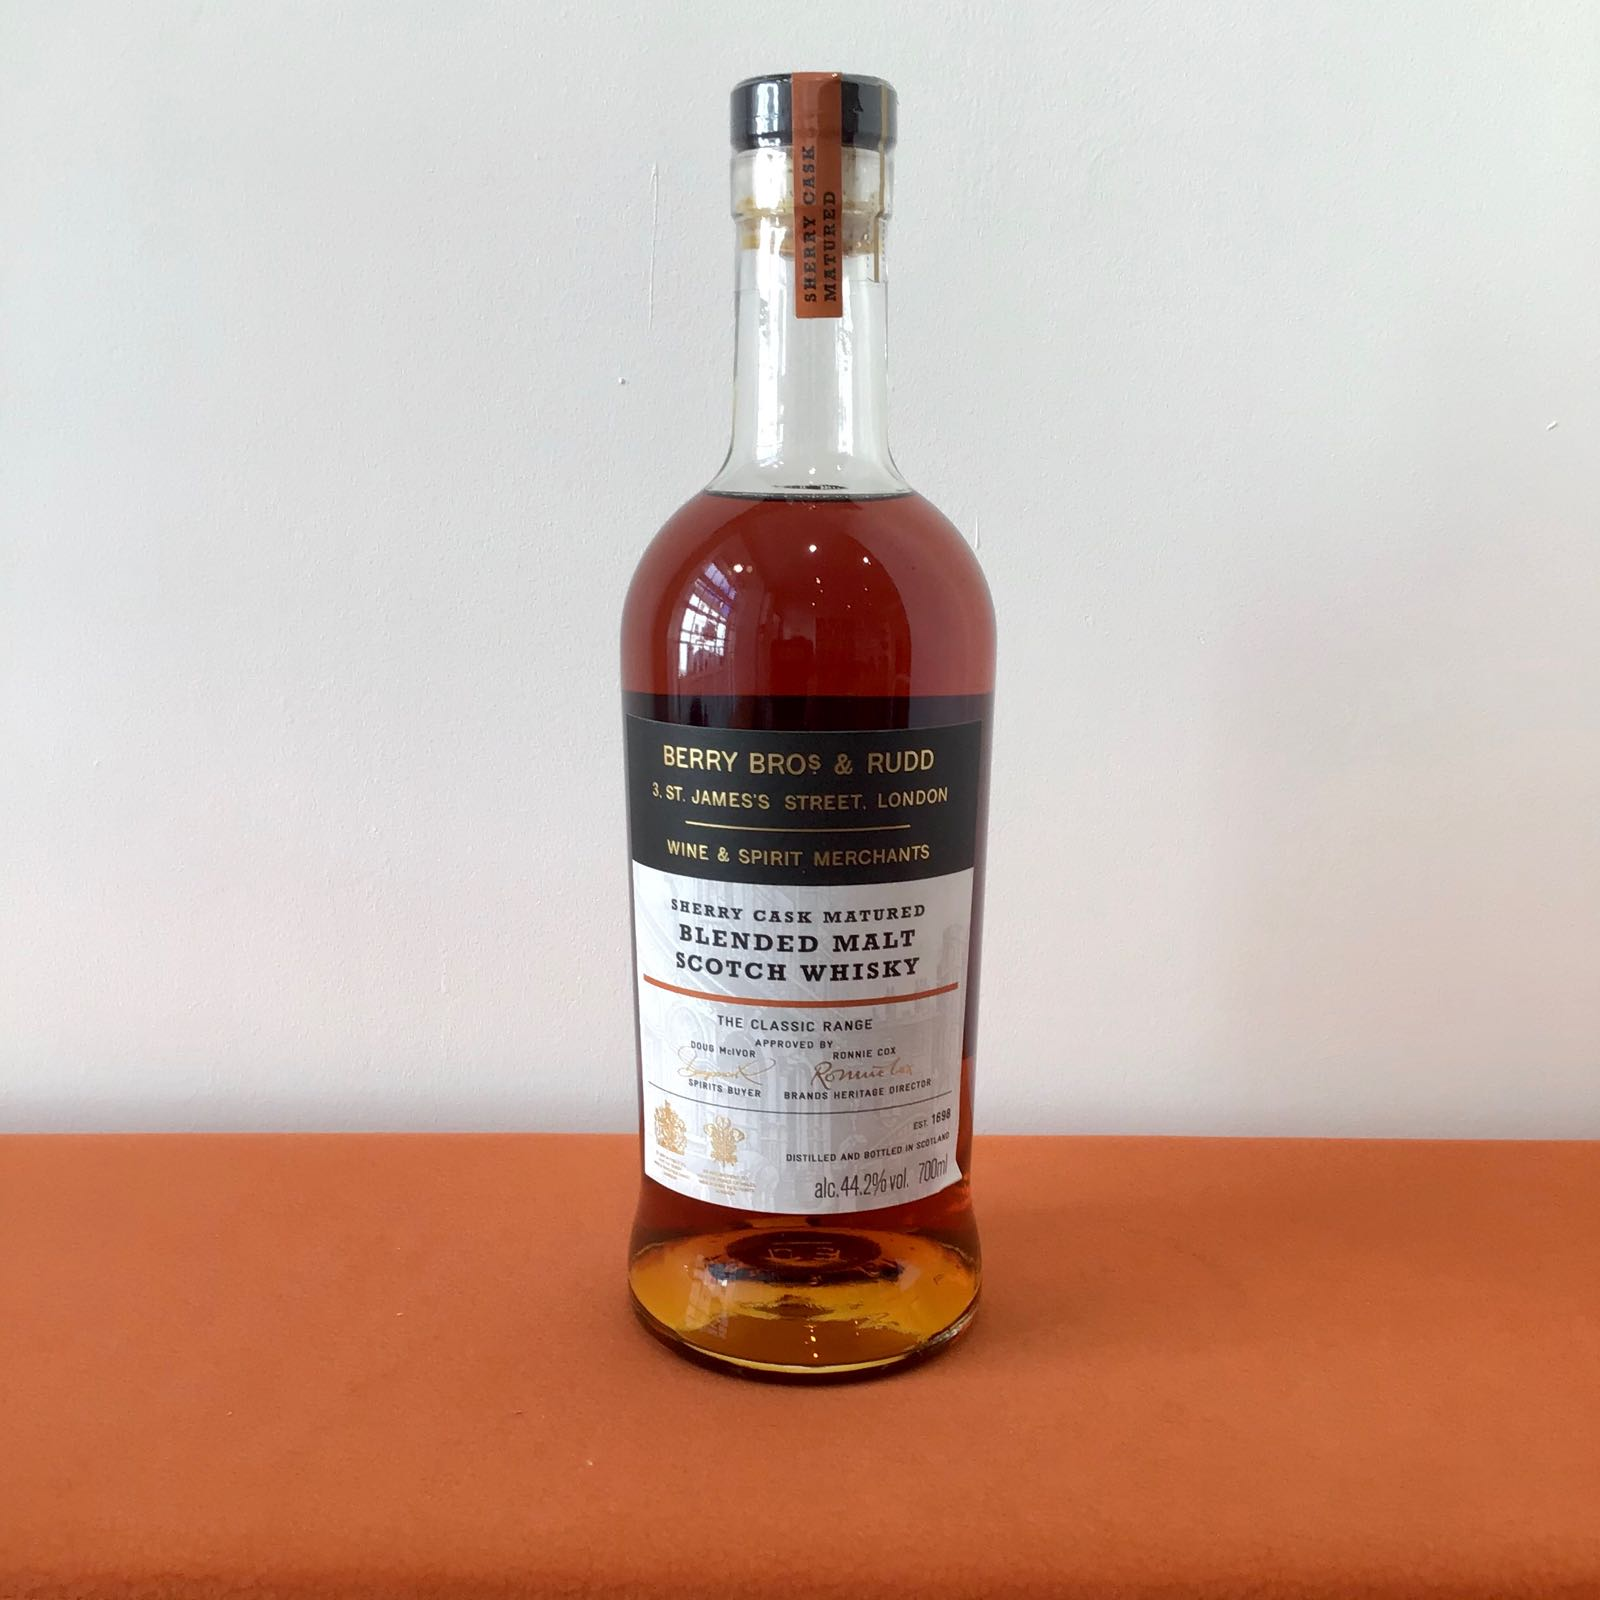 Berry Bros & Rudd:  Classic Sherry Blended Malt Whisky